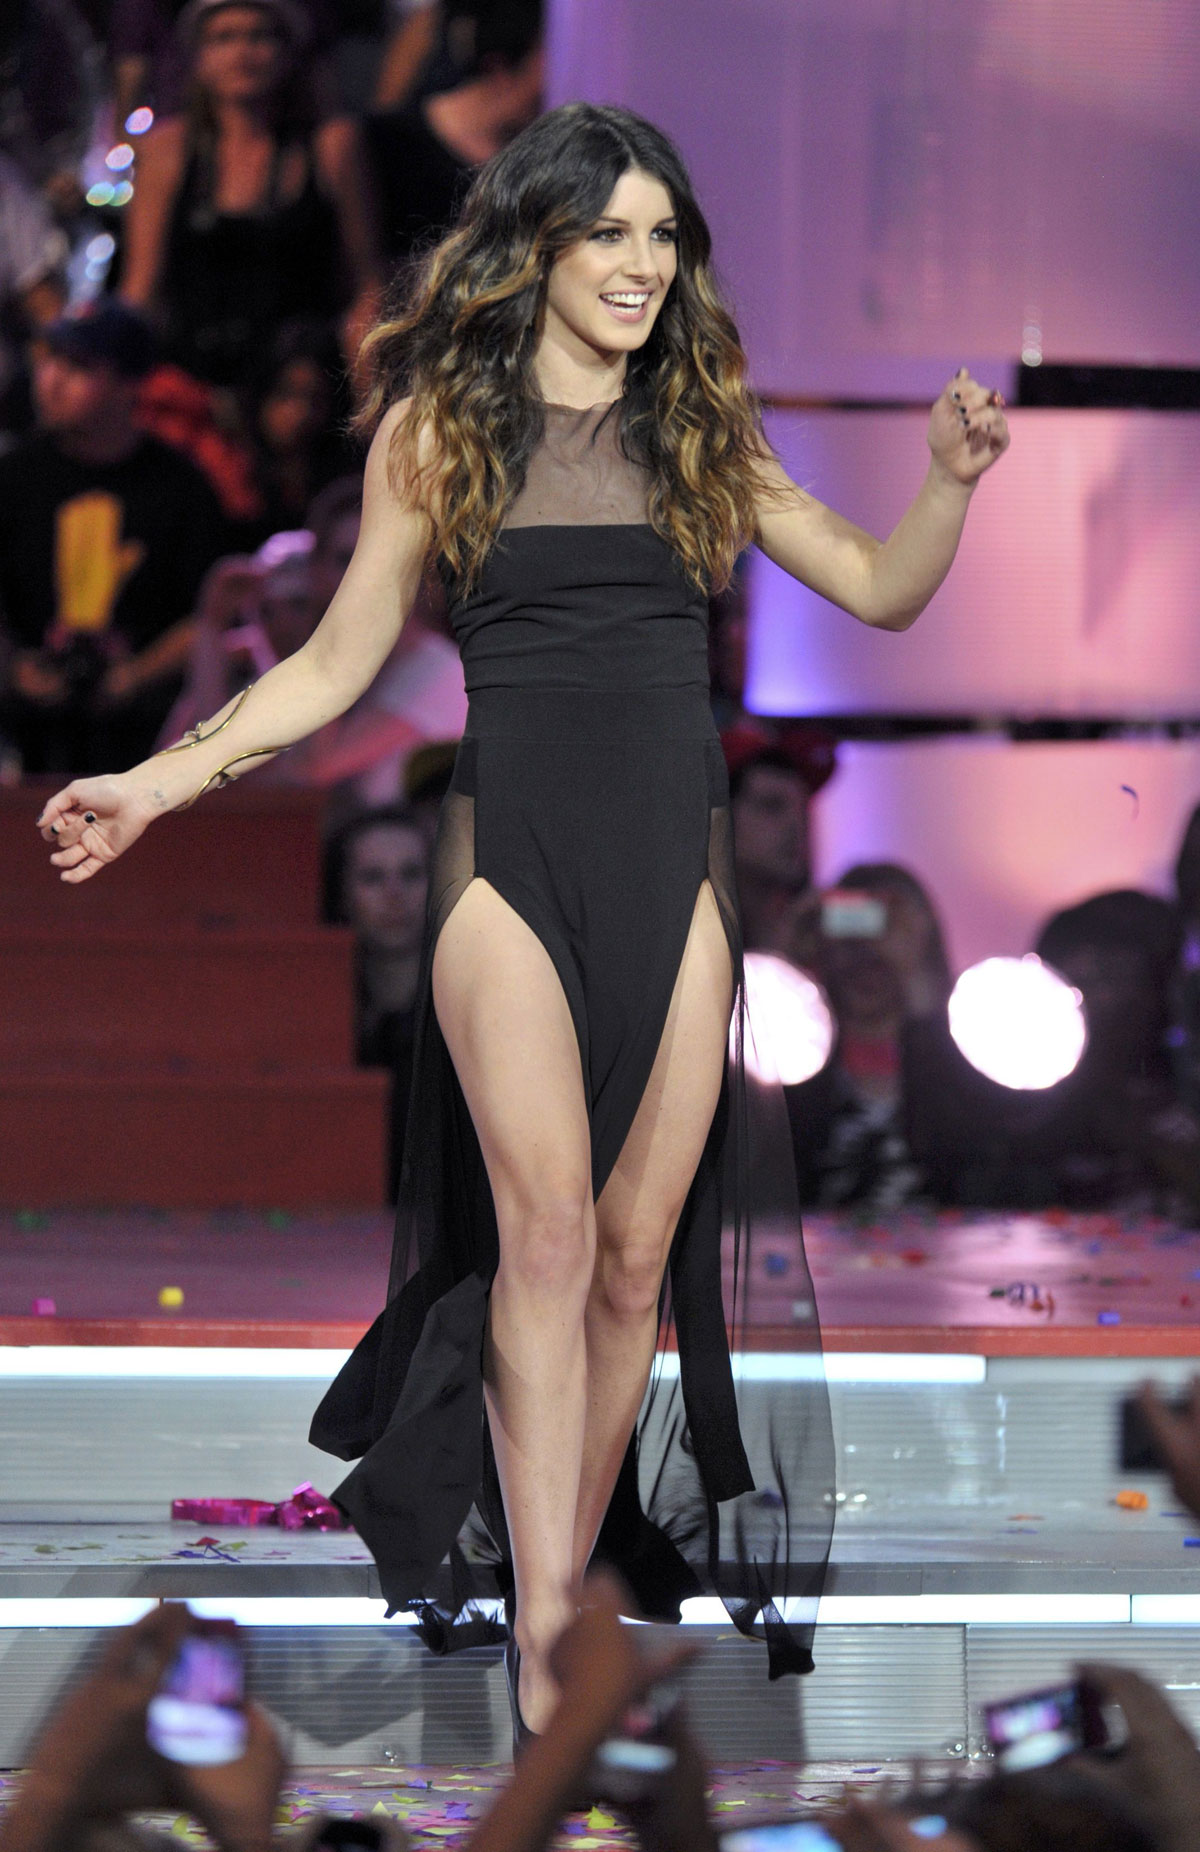 Fappening Video Shenae Grimes naked photo 2017